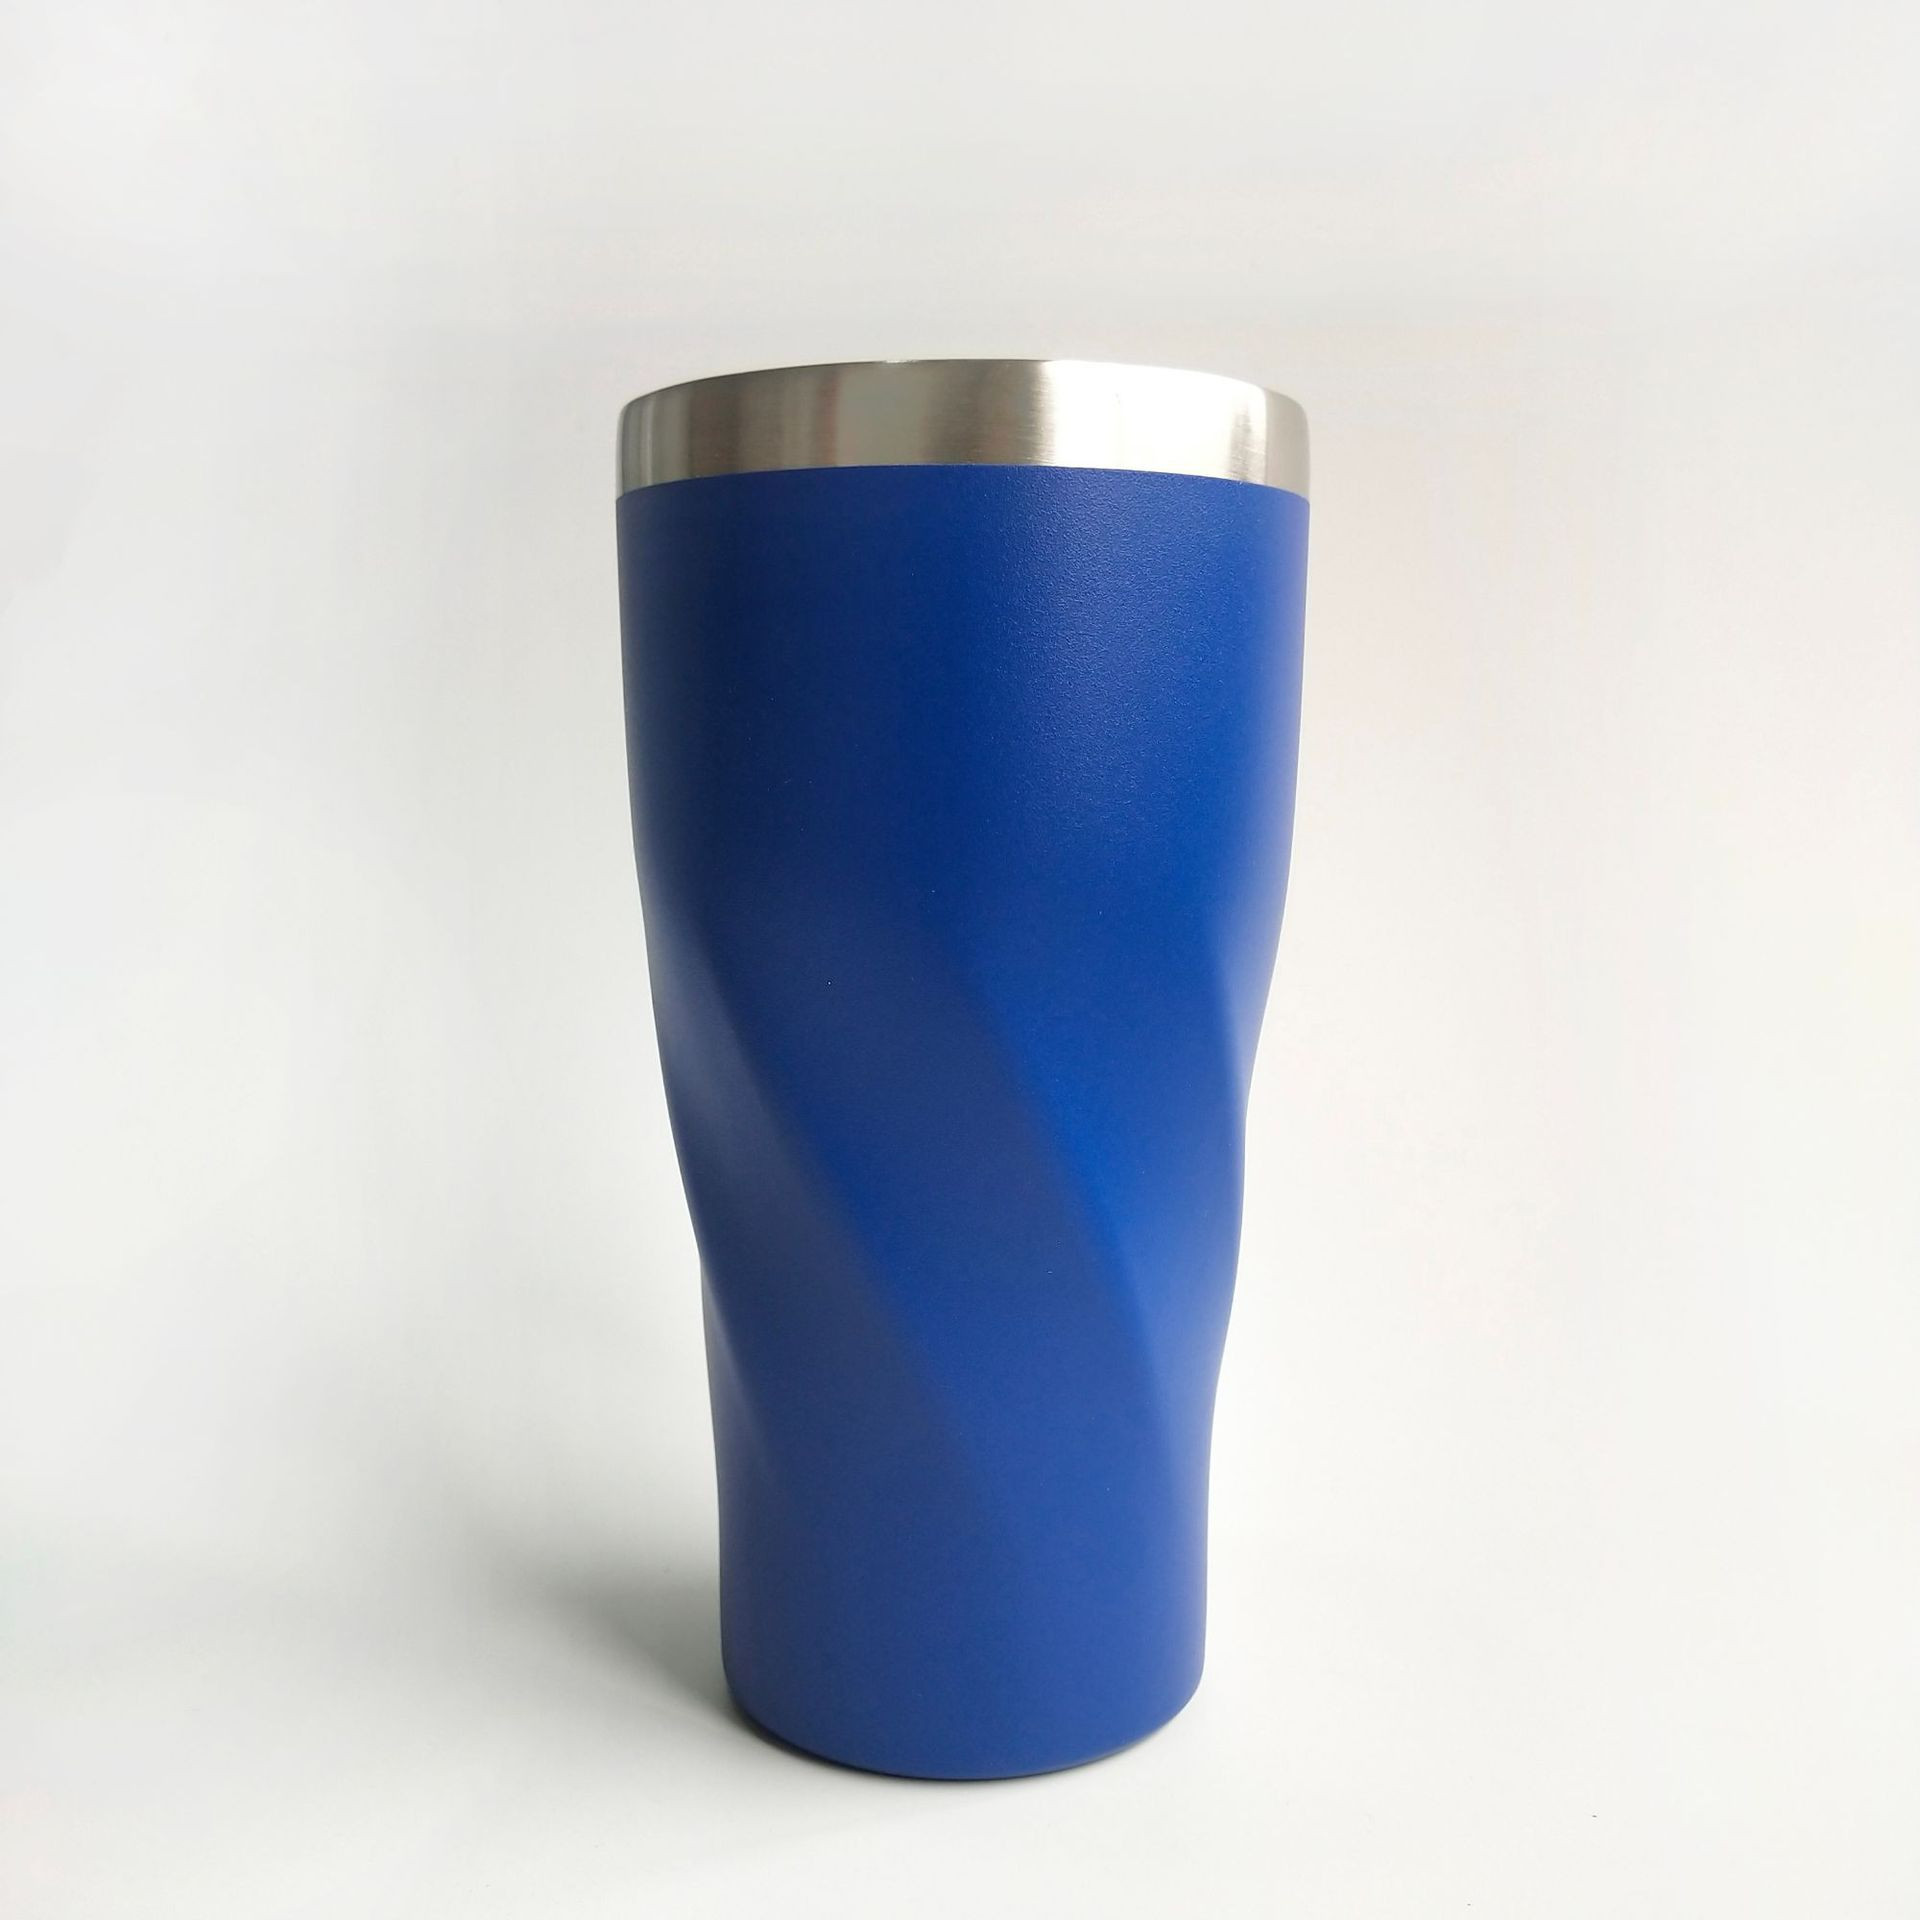 2019 Hot 18/8 Stainless Steel Thermal Hot/Cold Tumbler Powder Coated Twisted Cup With Lid